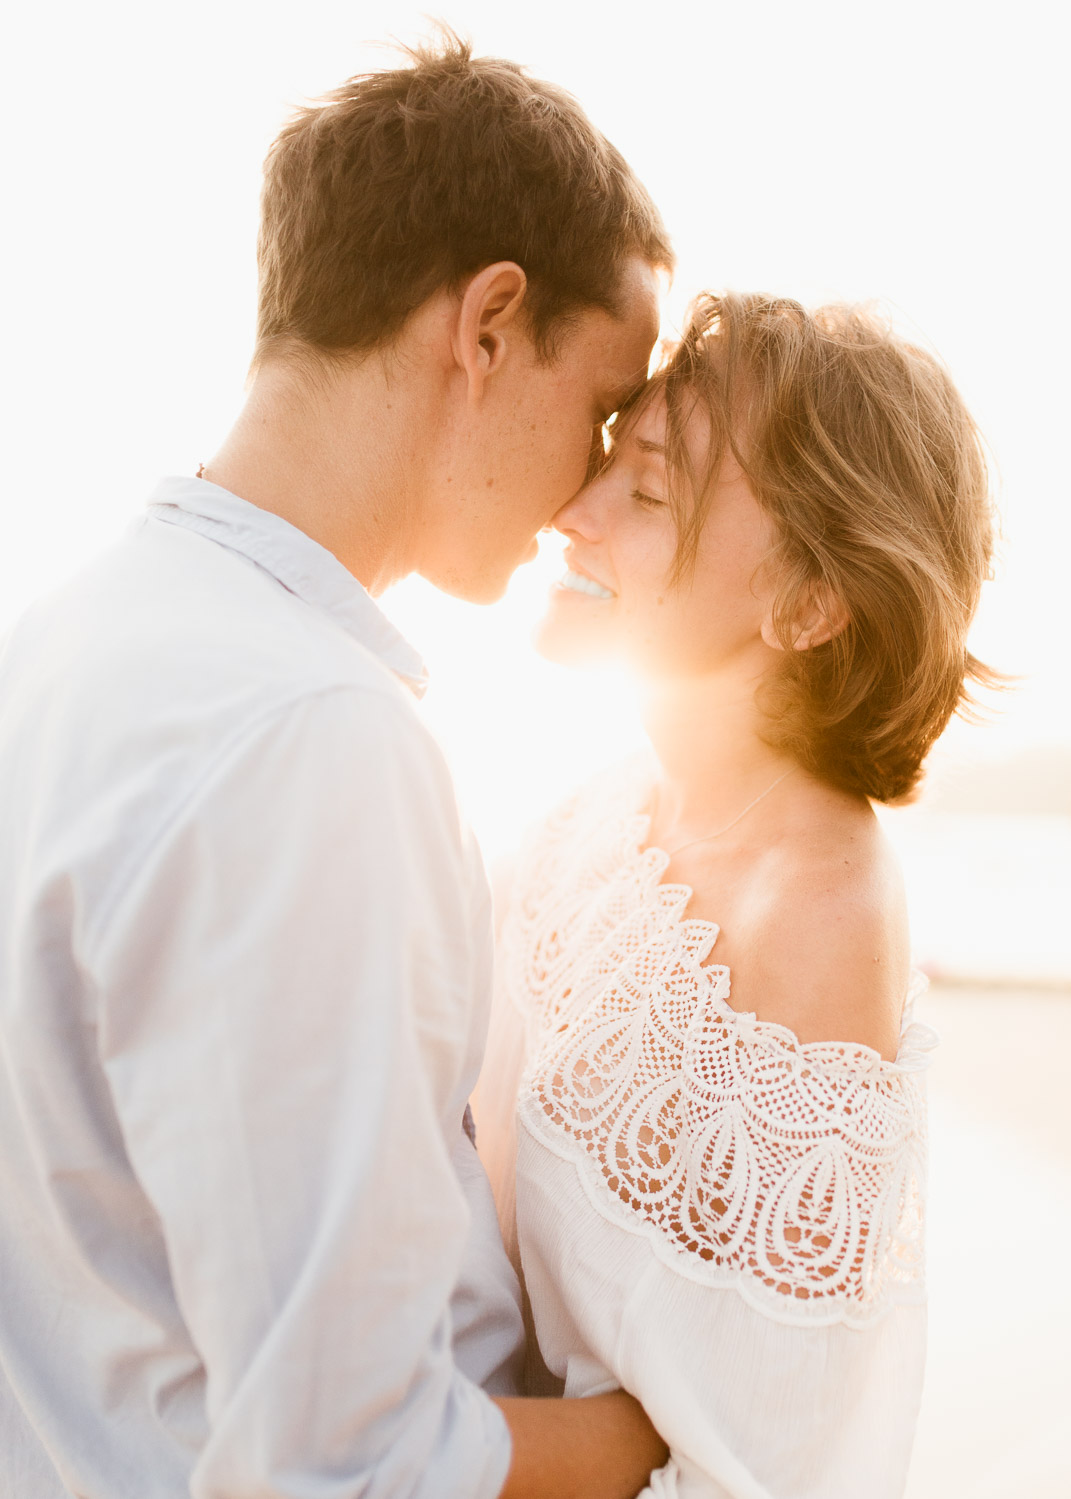 Couple about to kiss and backlit by sun during engagement session in Sri Lanka